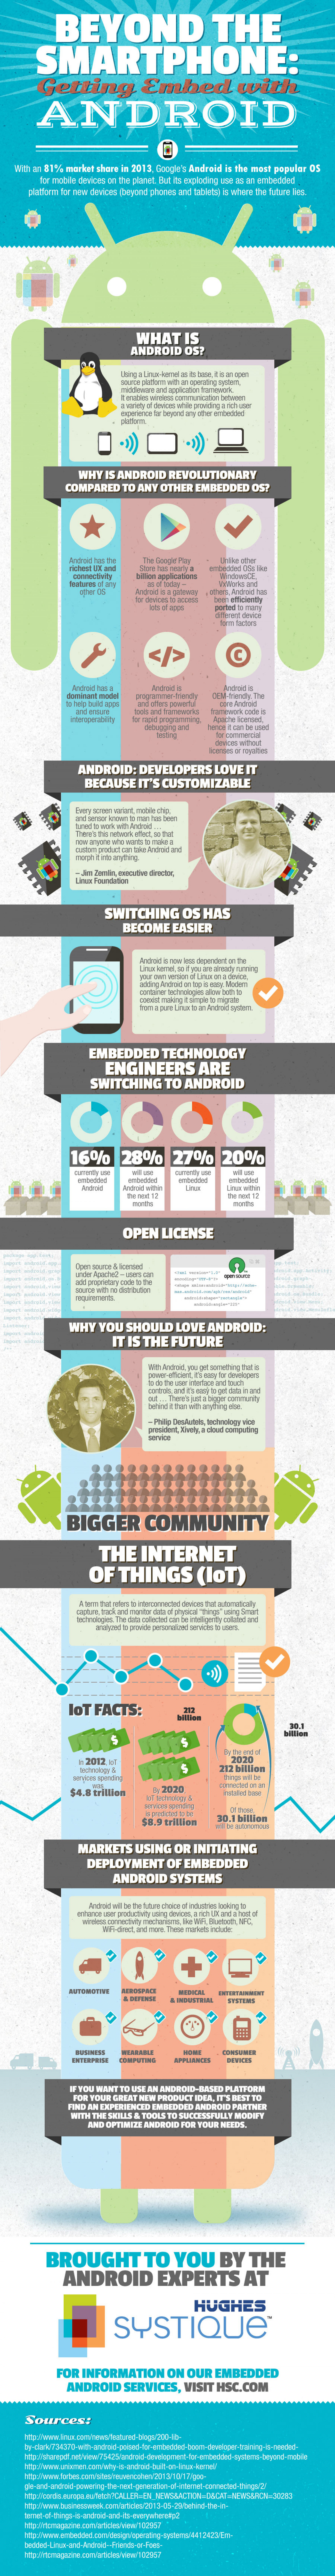 Beyond The Smartphone: Getting Embed With Android Infographic